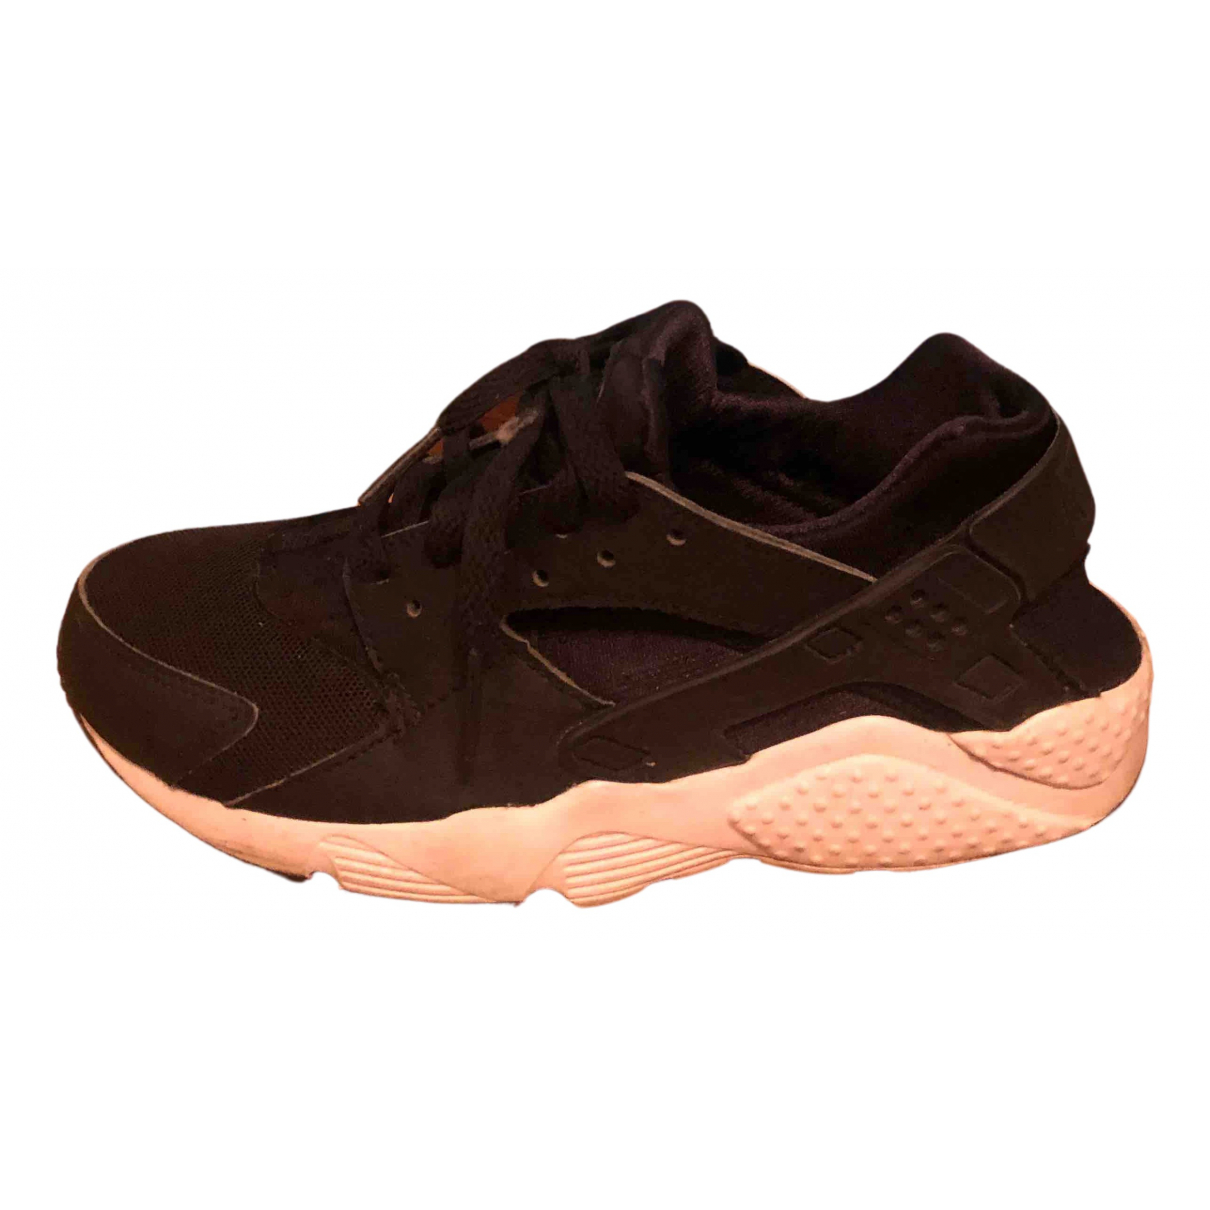 Nike Huarache Black Trainers for Women 36.5 EU